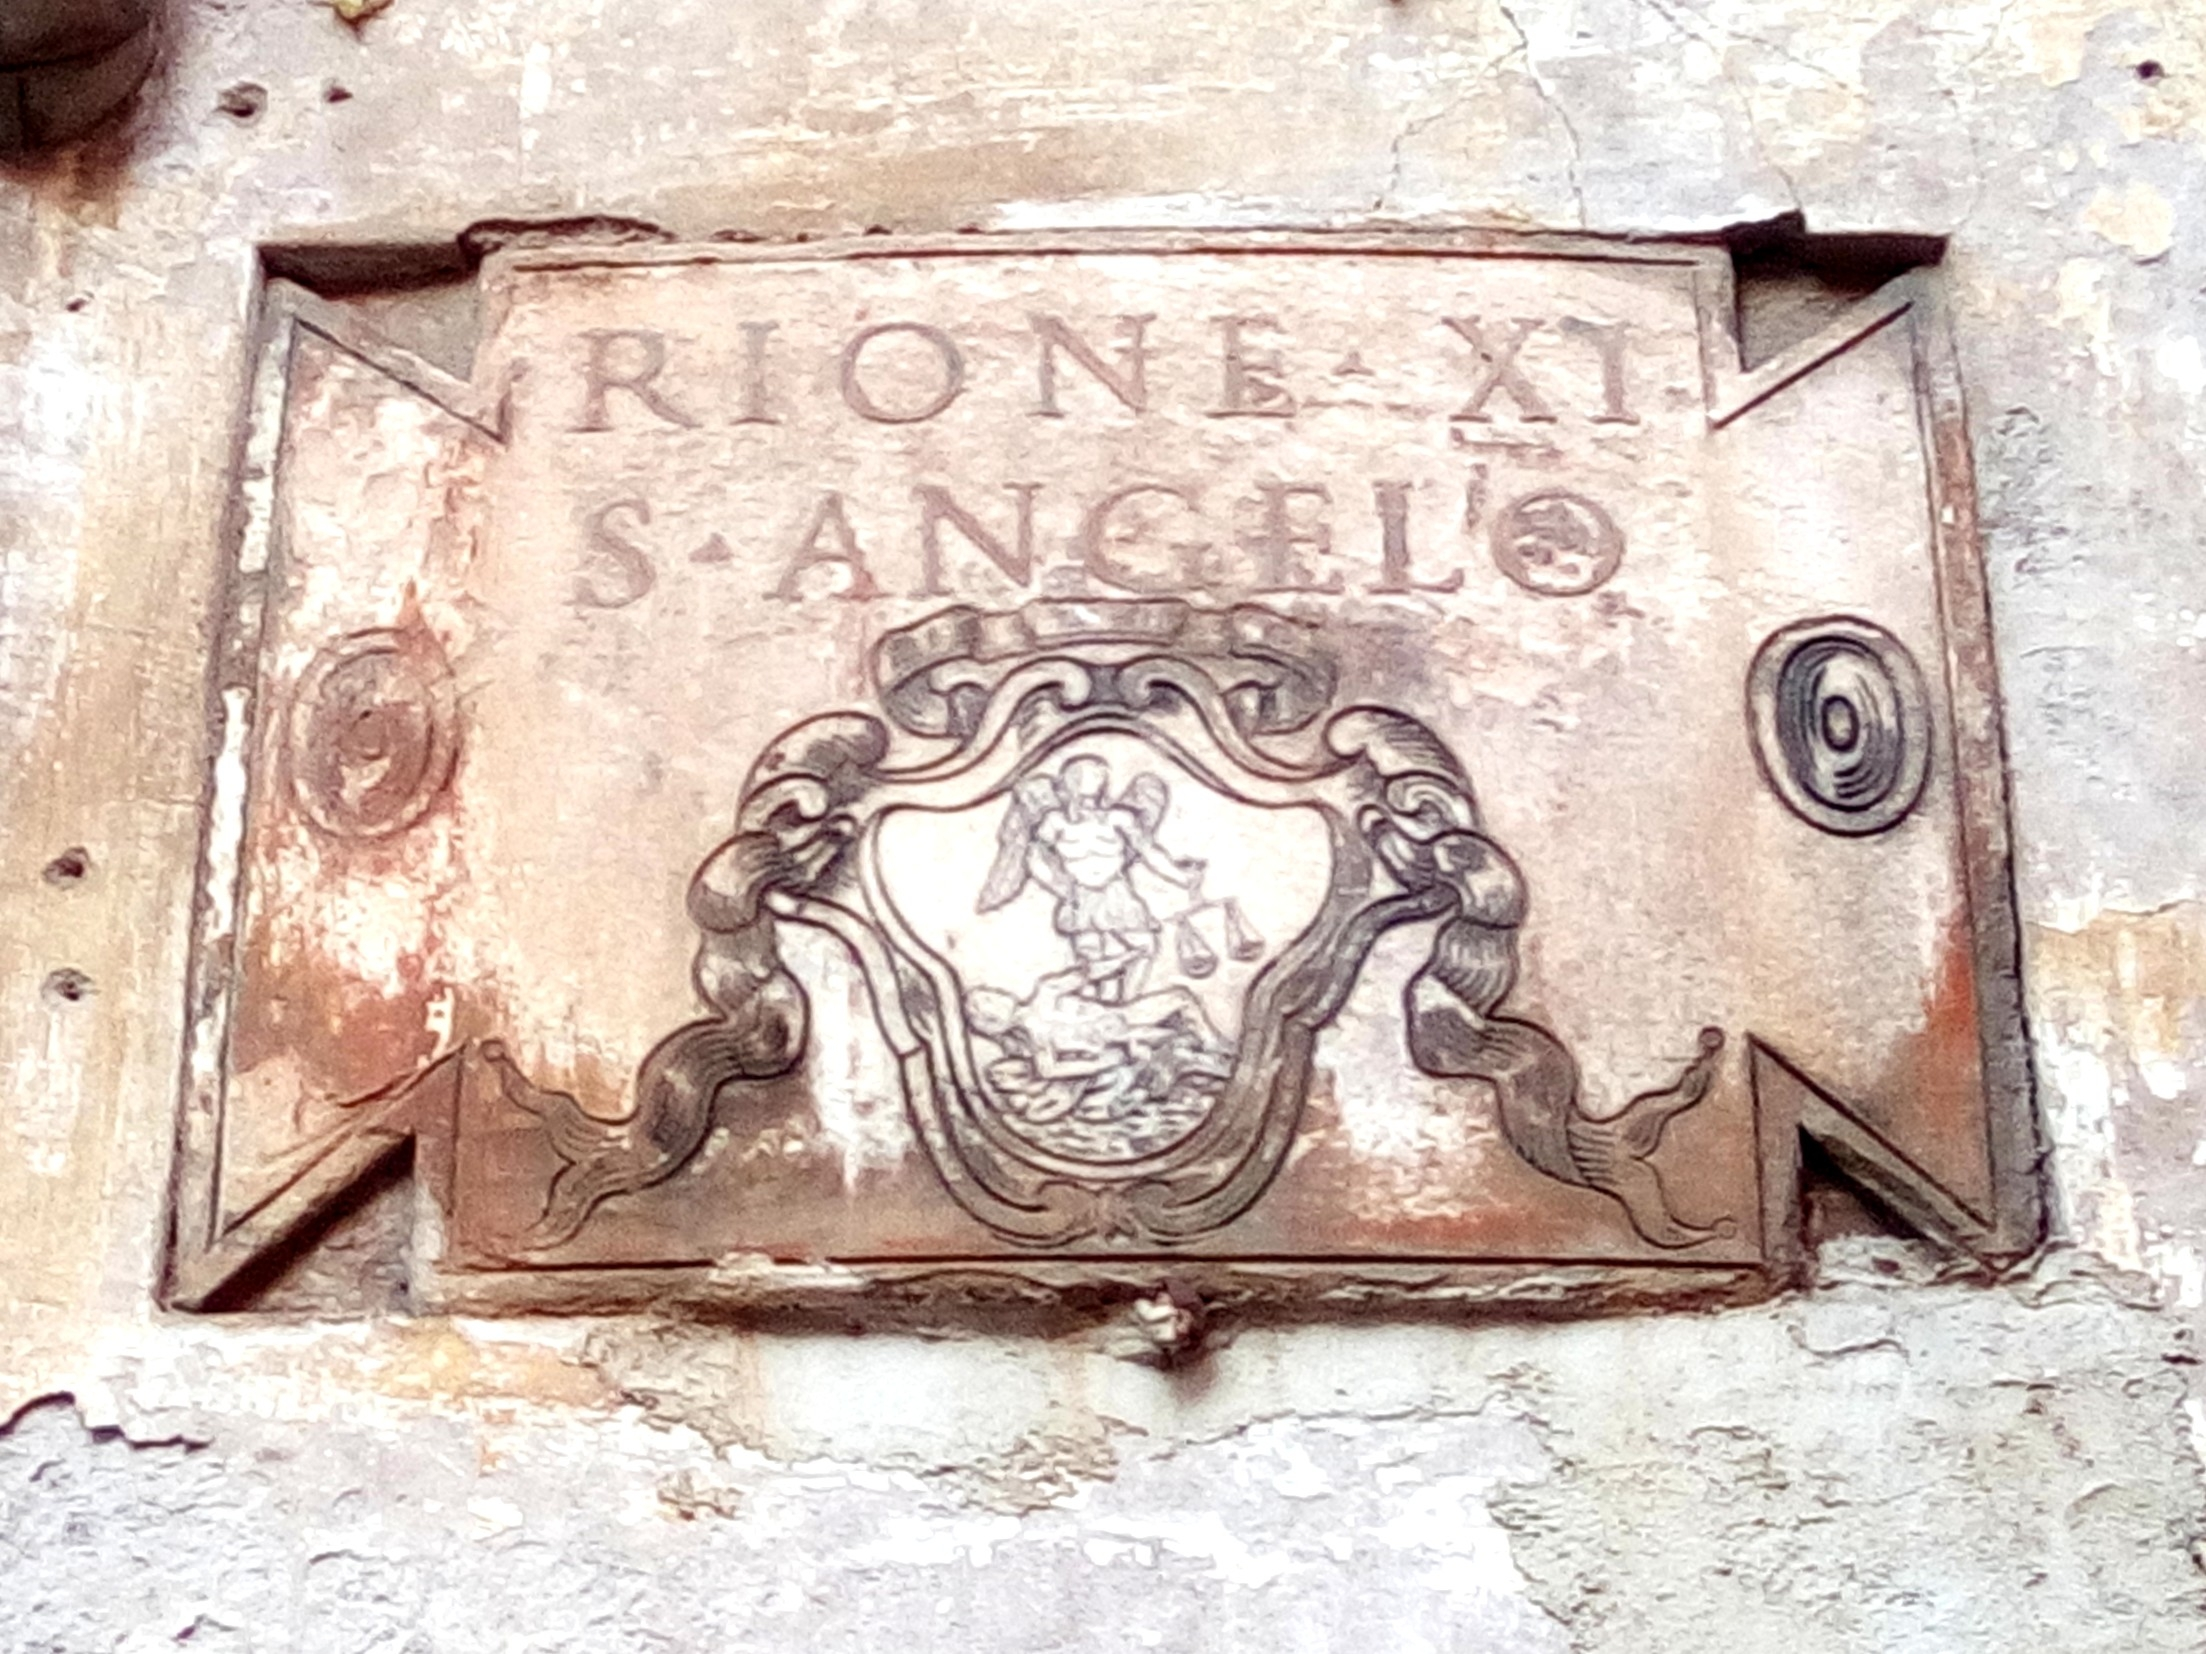 Rione Sant'Angelo